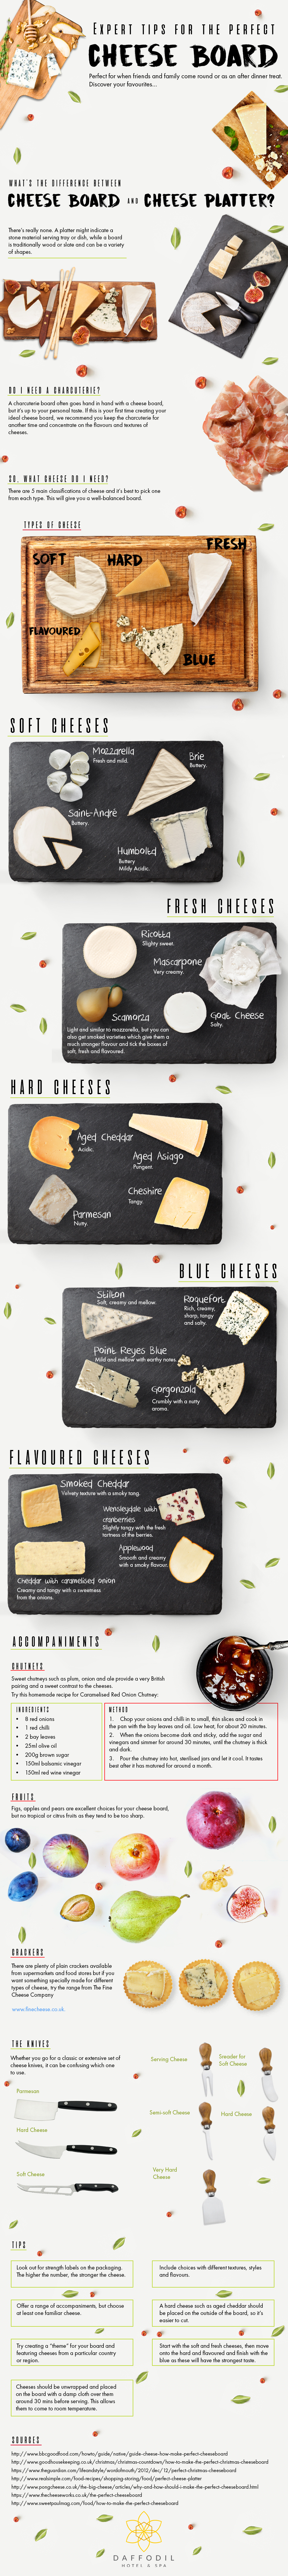 How To Create An Impeccable Cheese Board? - Infographic